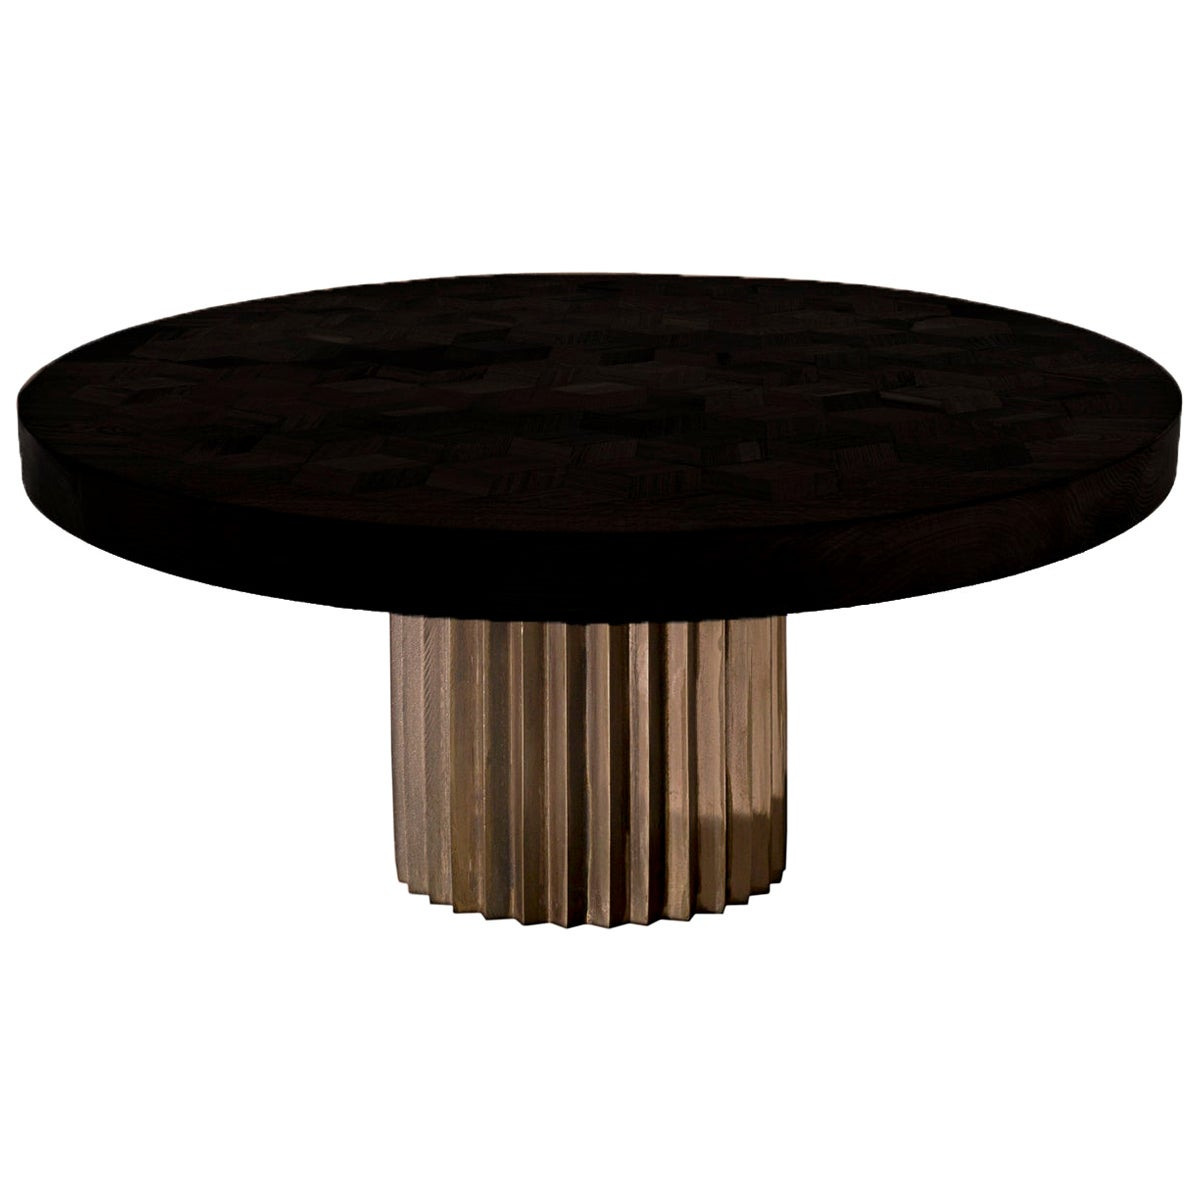 Doris Round Marquetry Table in Ebonized Reclaimed Oak with Cast Bronze Pedestal